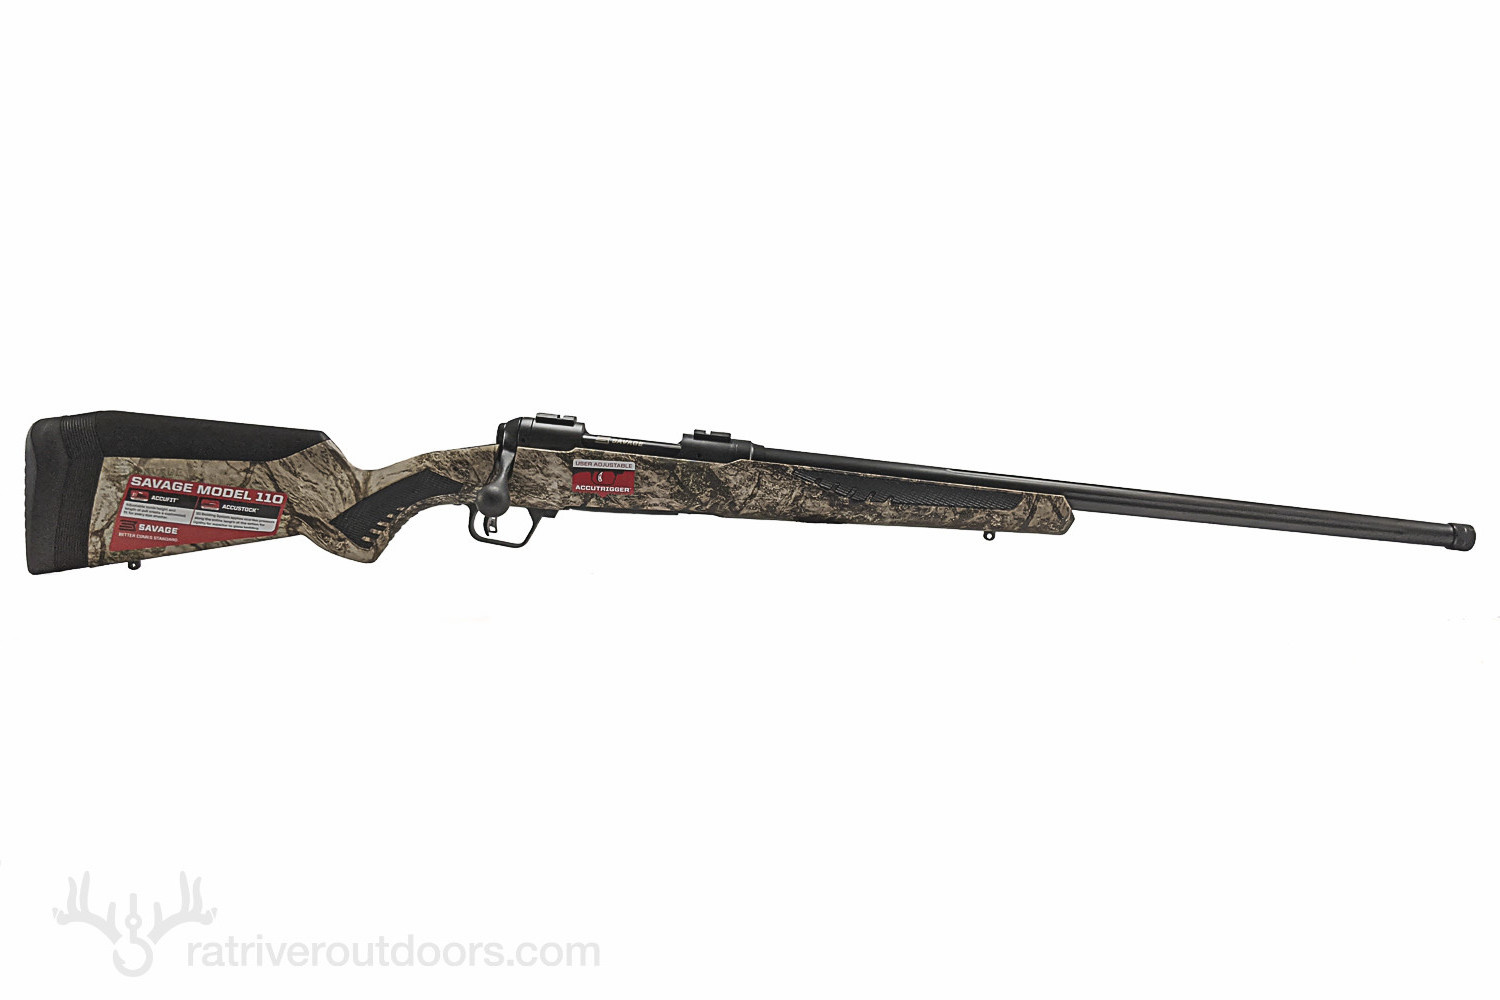 Savage Model 110 Predator 6.5 Creedmoor Rifle